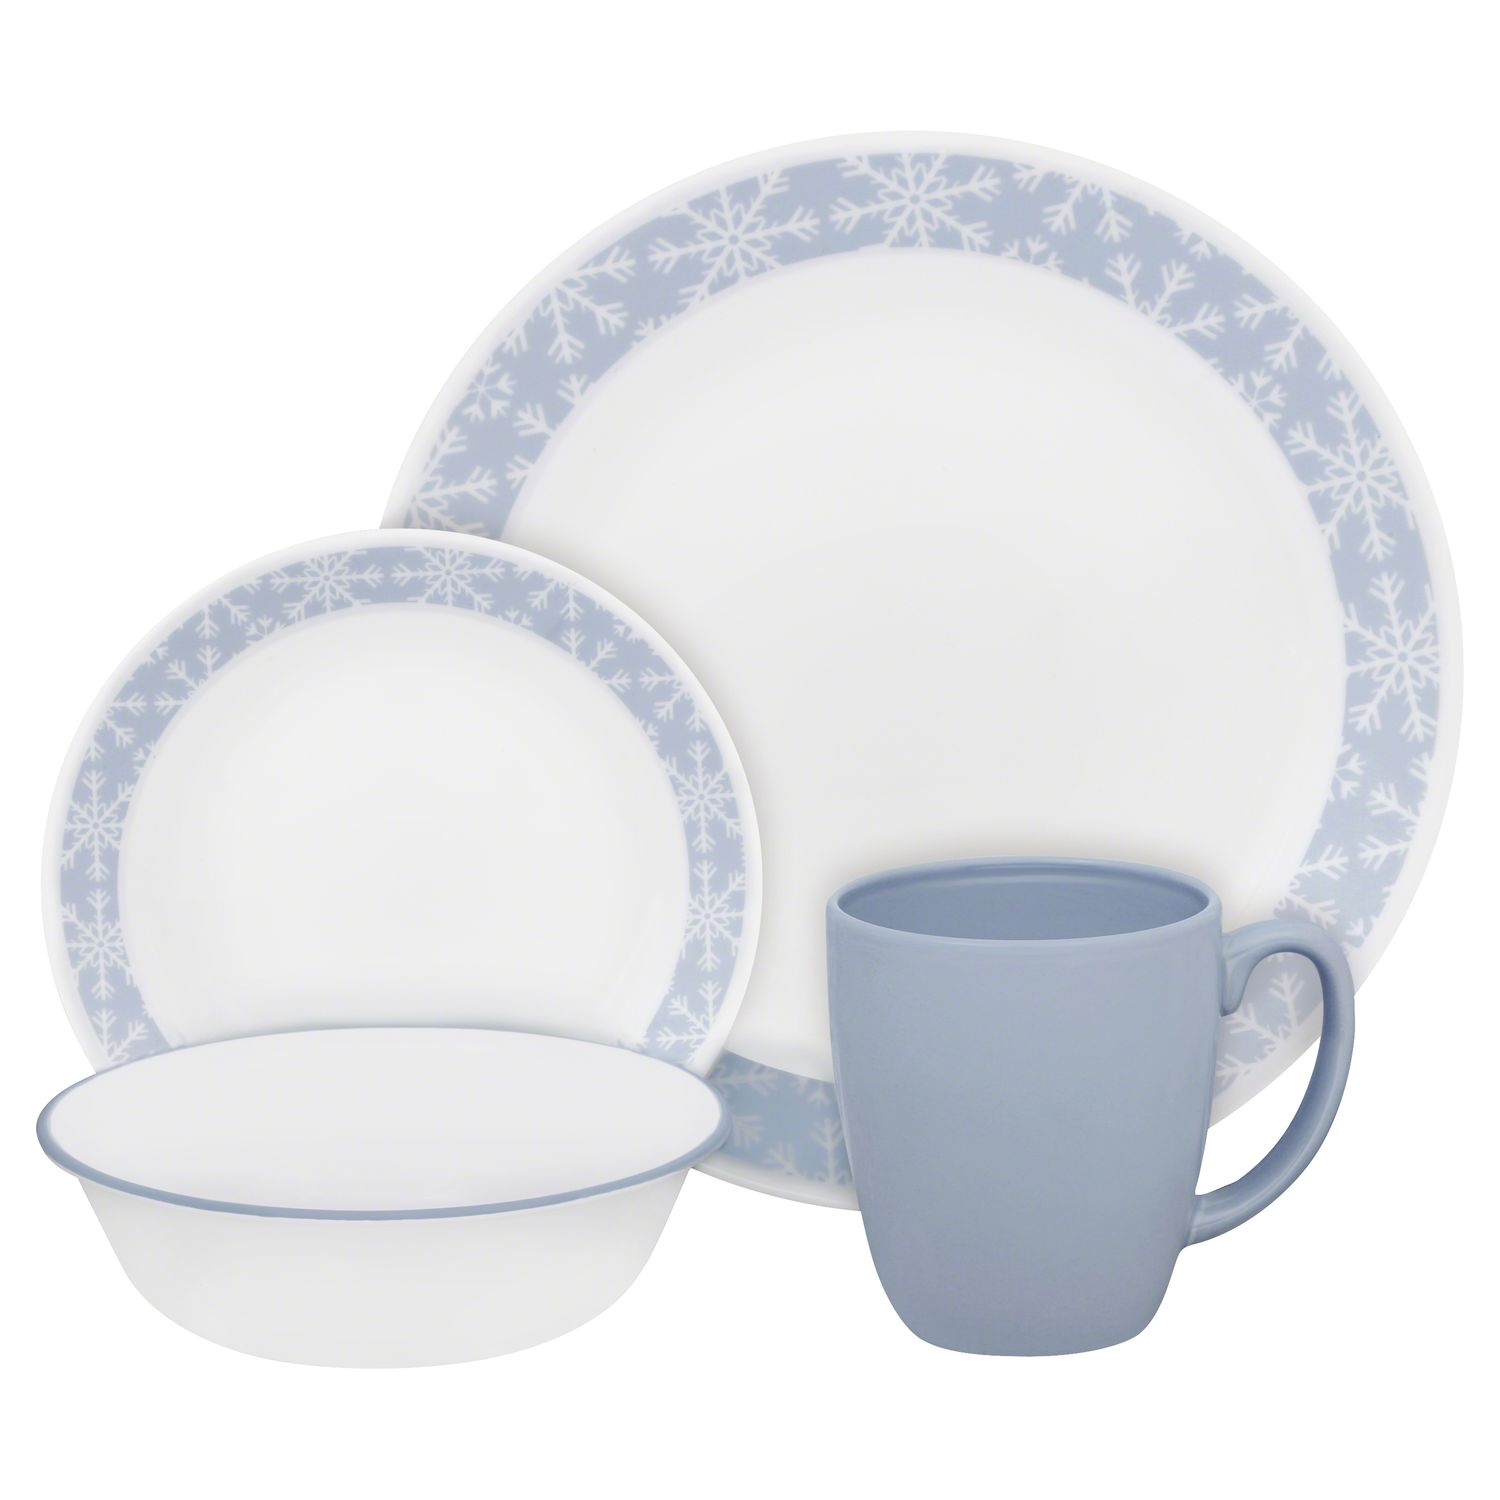 Corelle Holiday Collection 16-pc Dinnerware Set  sc 1 st  Designer Dinnerware Sets & Corelle Holiday Collection 16-pc Dinnerware Set Review | Corelle ...